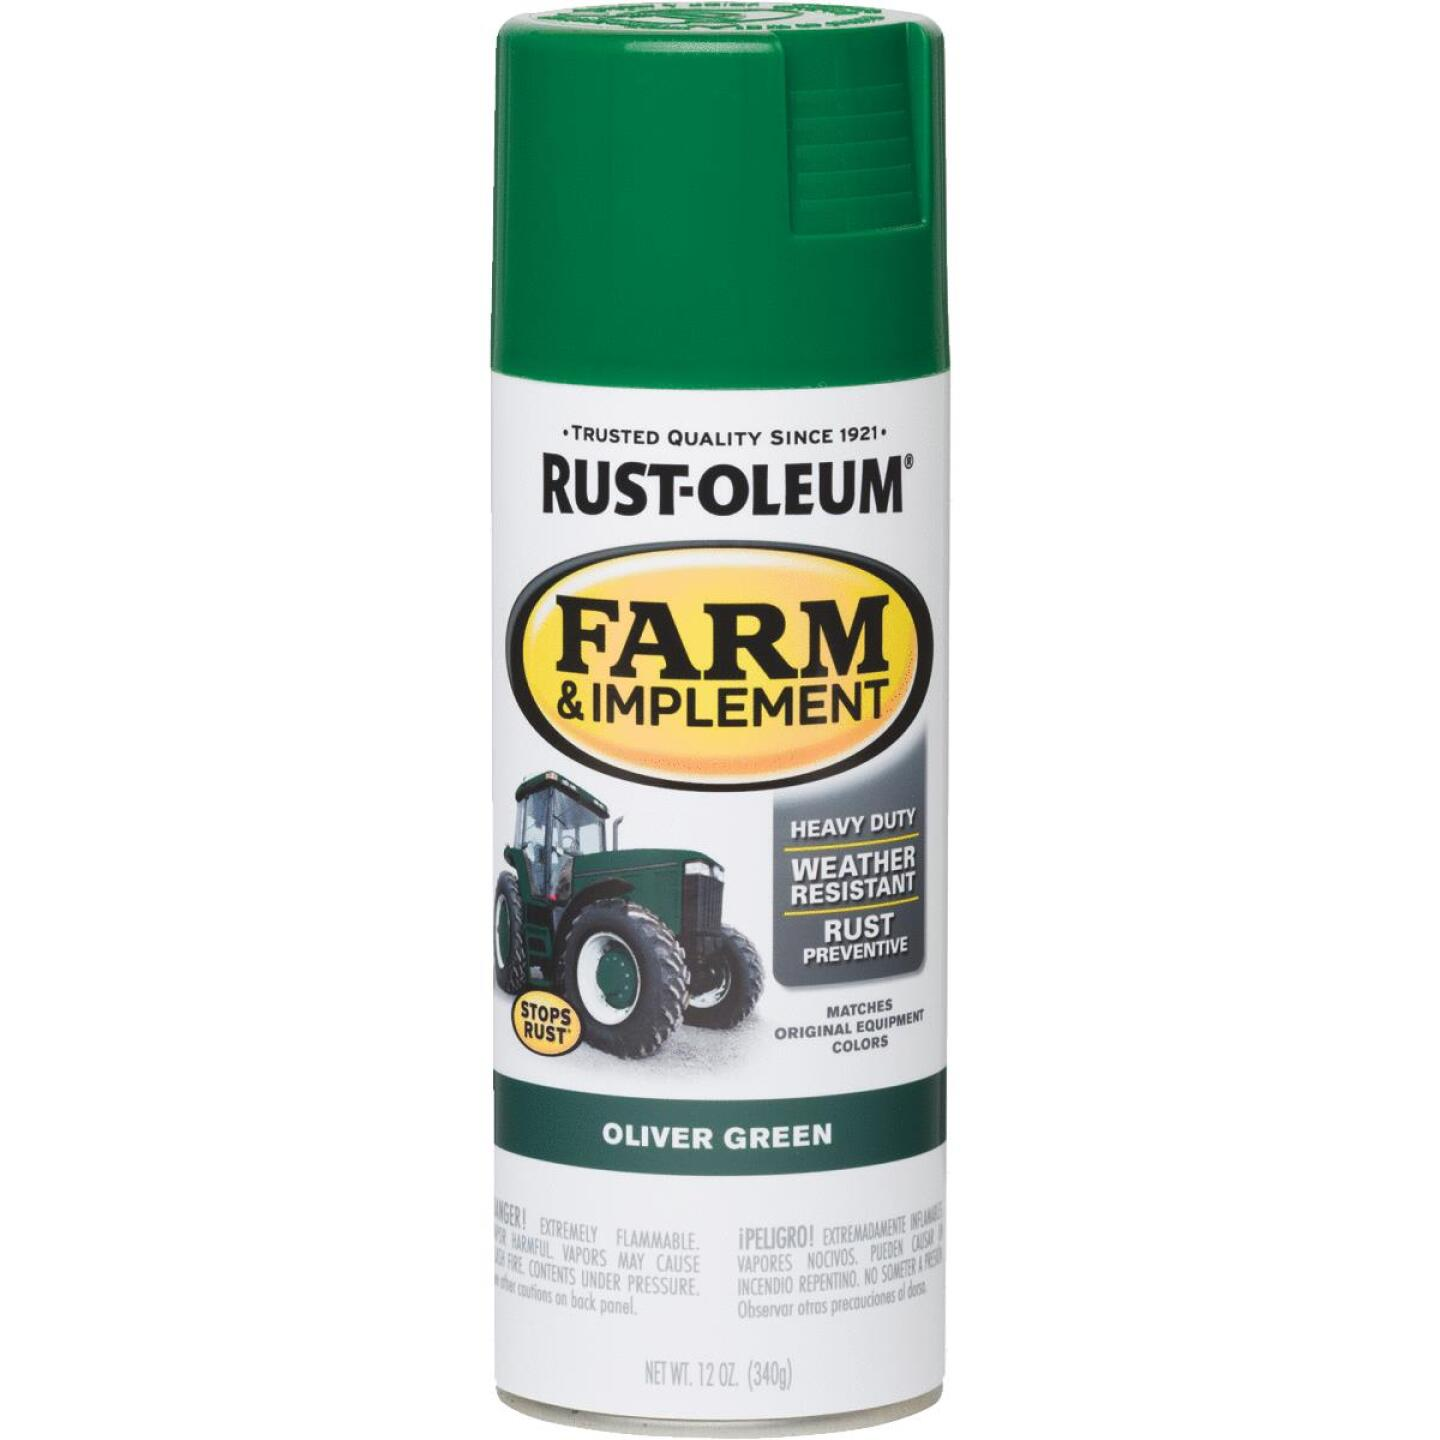 Rust-Oleum 12 Oz. Oliver Green Farm & Implement Spray Paint Image 1